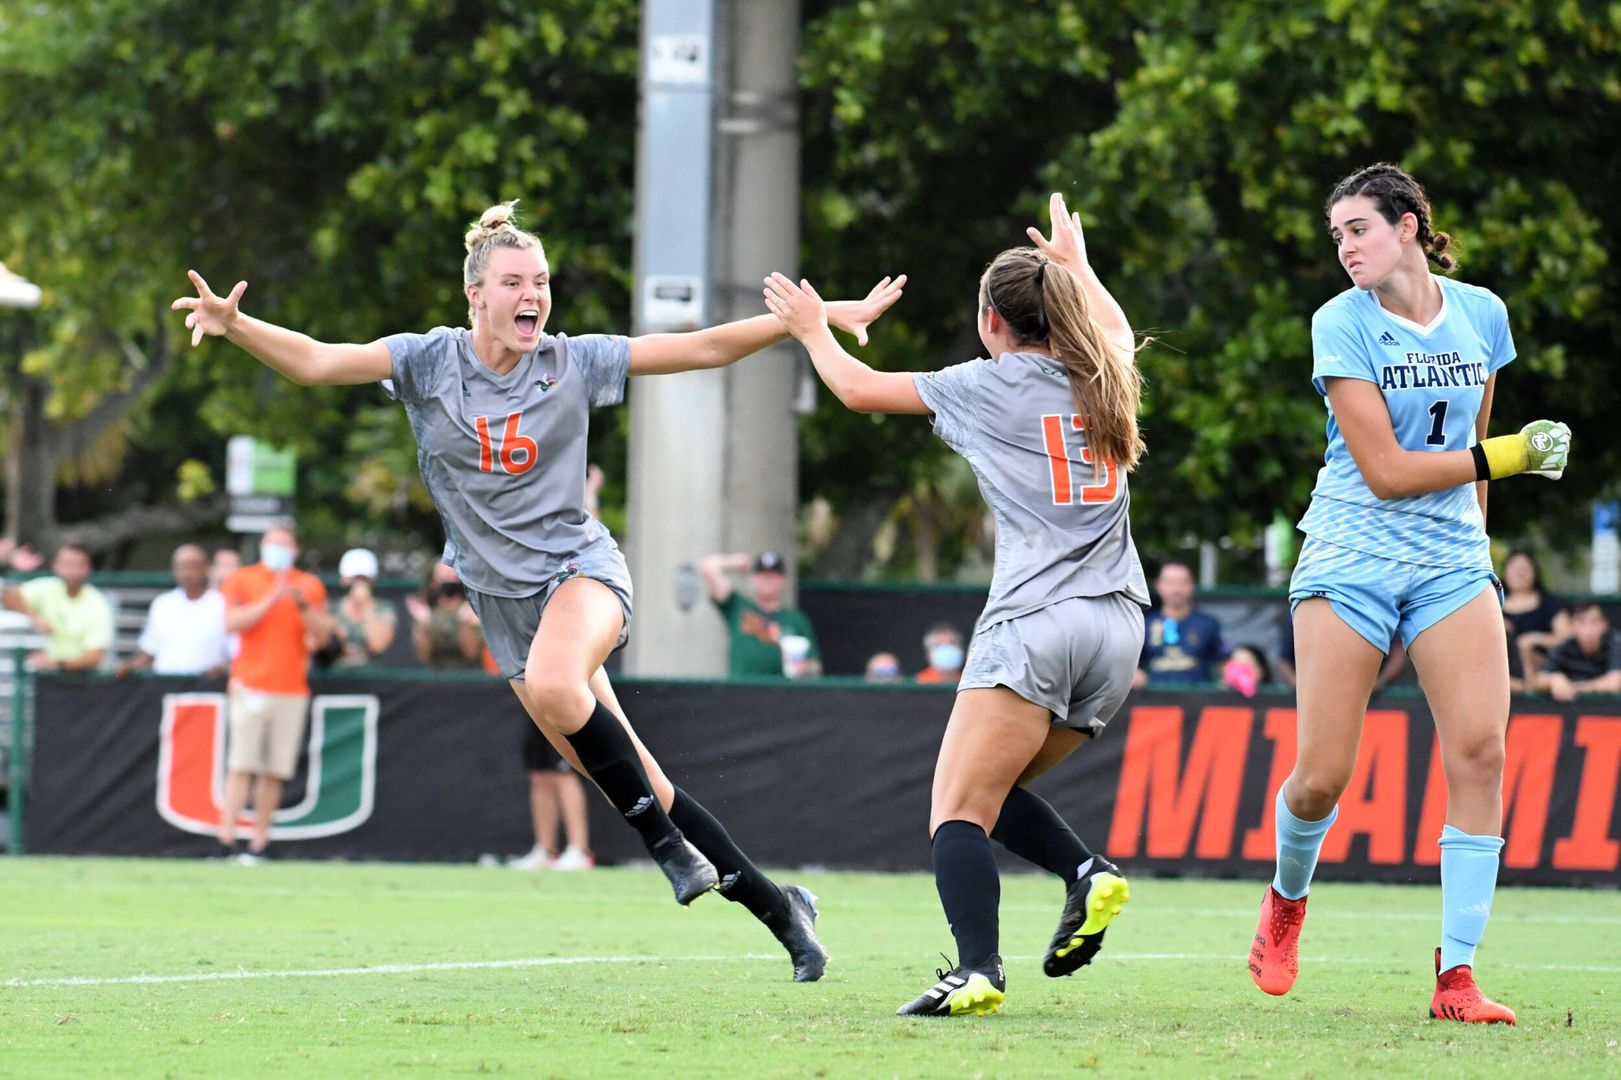 Canes Fly Past Owls in Season Opener